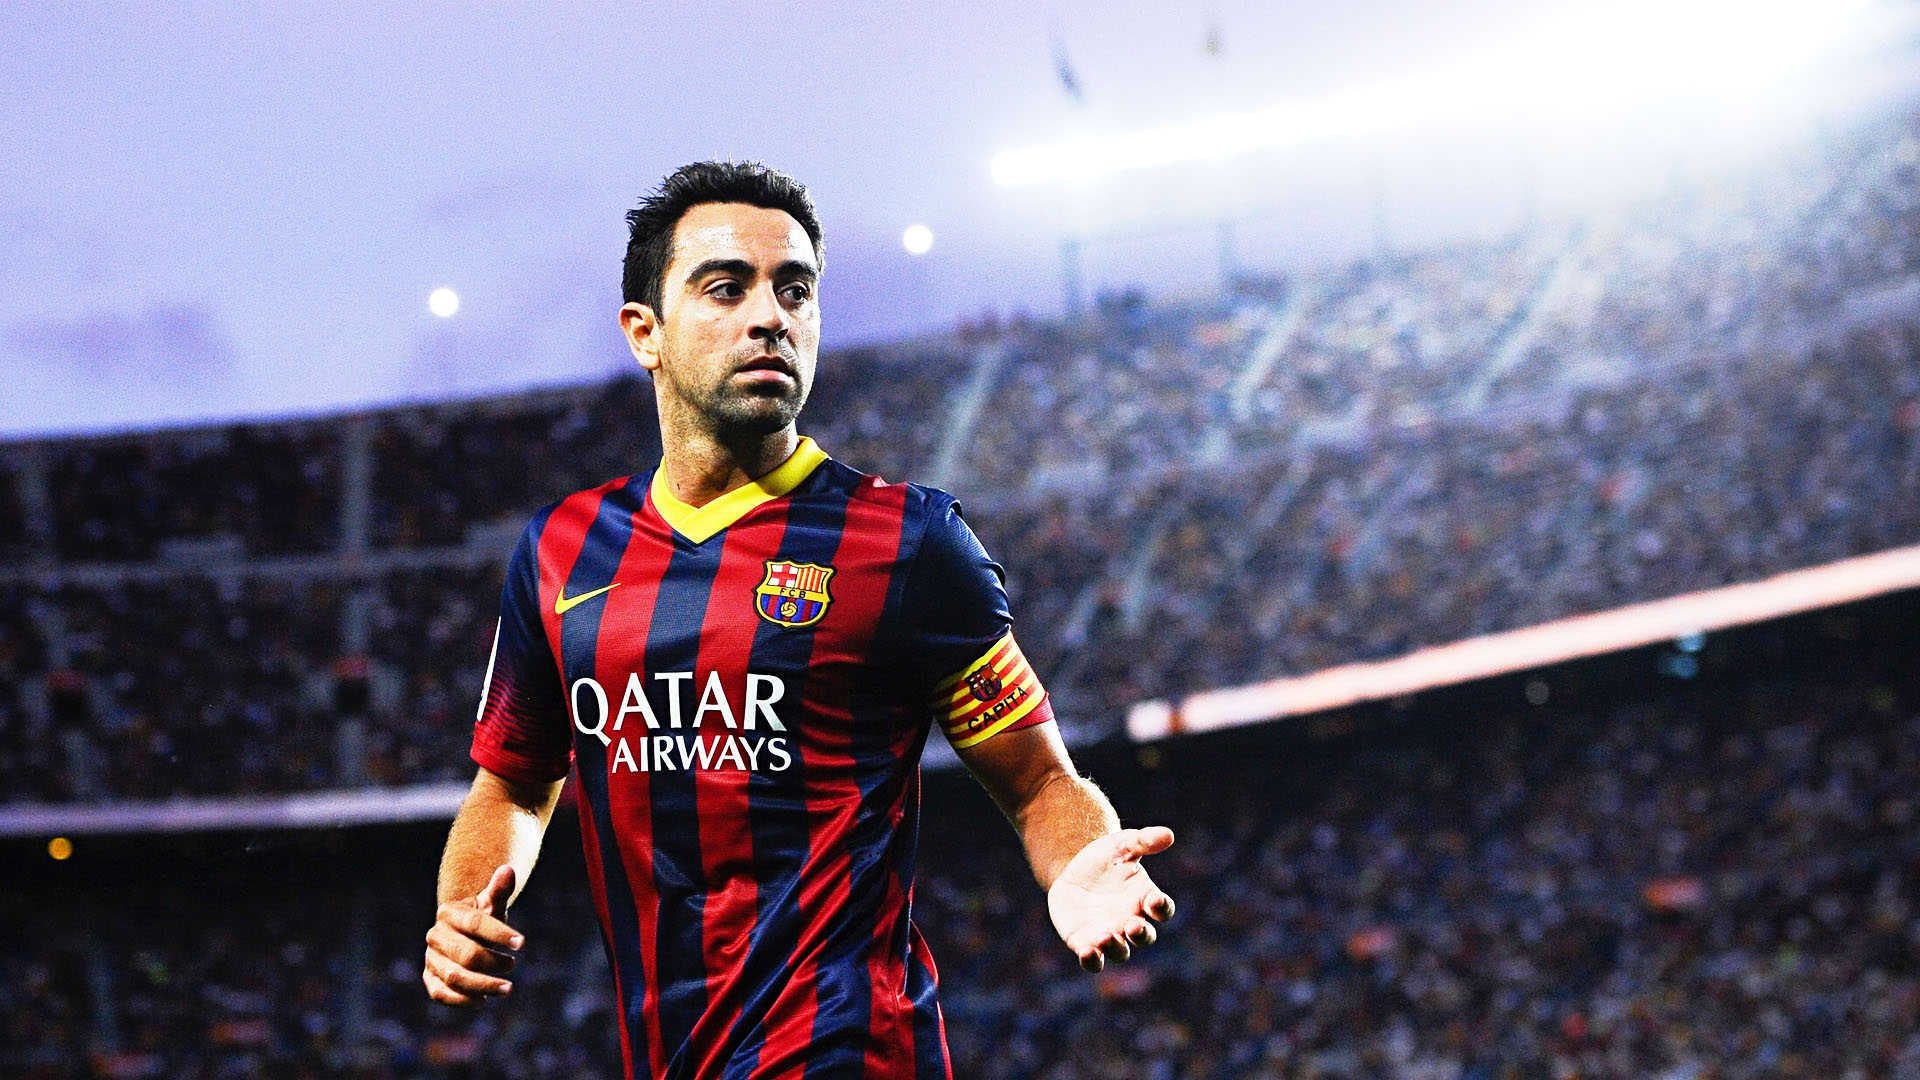 Download Xavi Hernandez Barcelona Hd Wallpaper Hdwallwide Com Xavi Hernandez Barcelona Spain National Football Team